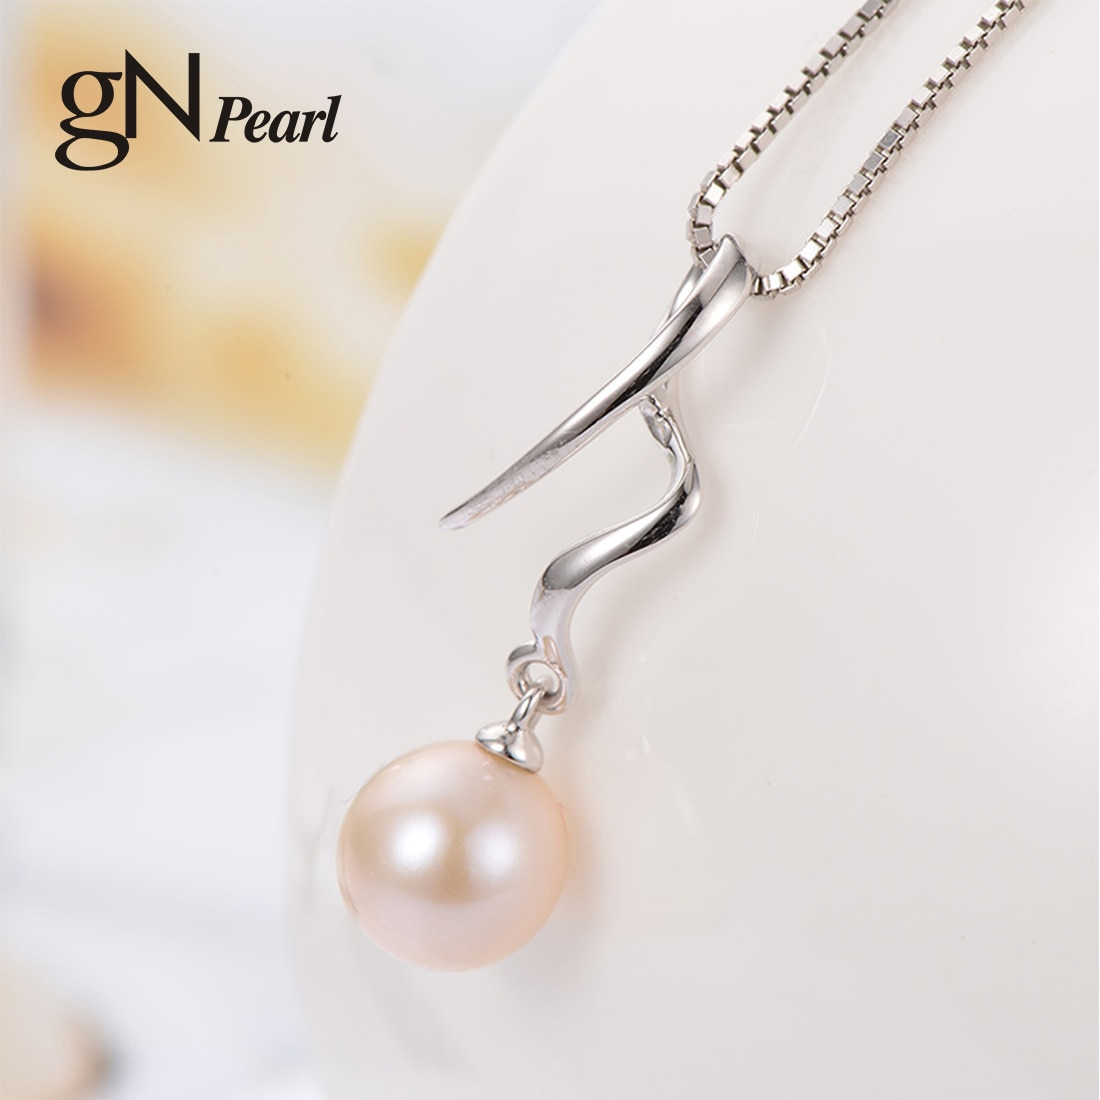 gN Pearl Genuien 925 Sterling Silver Natural Freshwater Pendants Necklaces 7-8mm Round Chain gNPearl Jewelry for Women